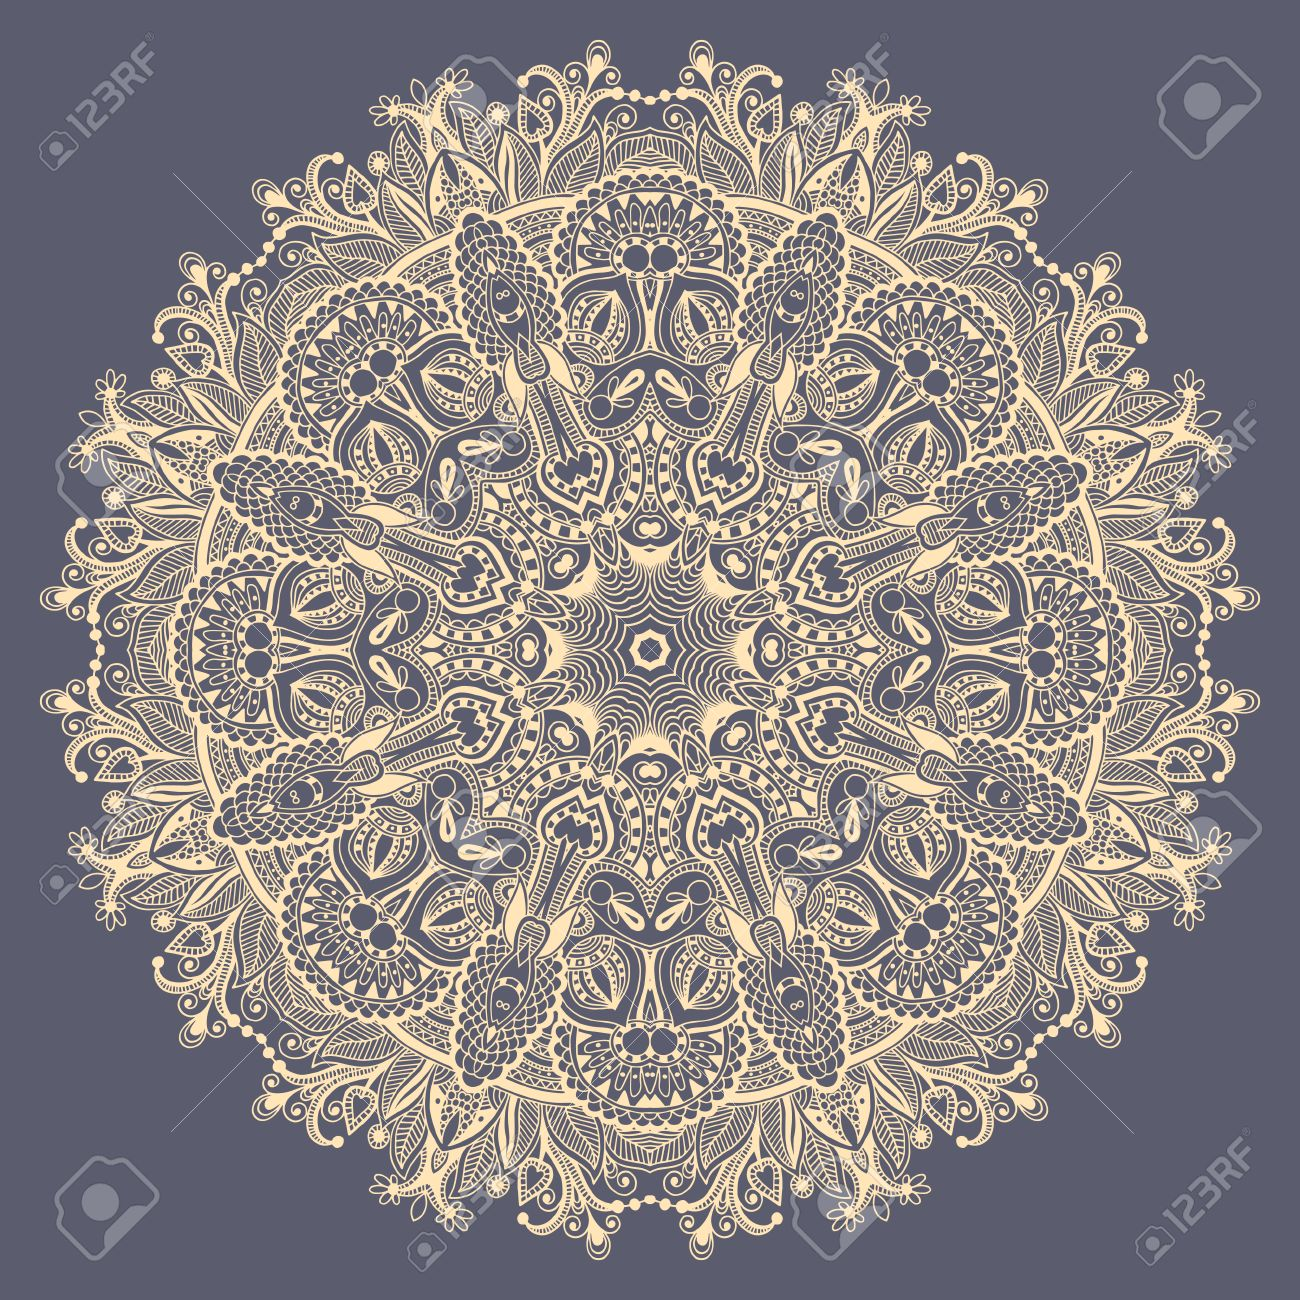 Mandala circle decorative spiritual indian symbol of lotus flower mandala circle decorative spiritual indian symbol of lotus flower round ornamental lace pattern mightylinksfo